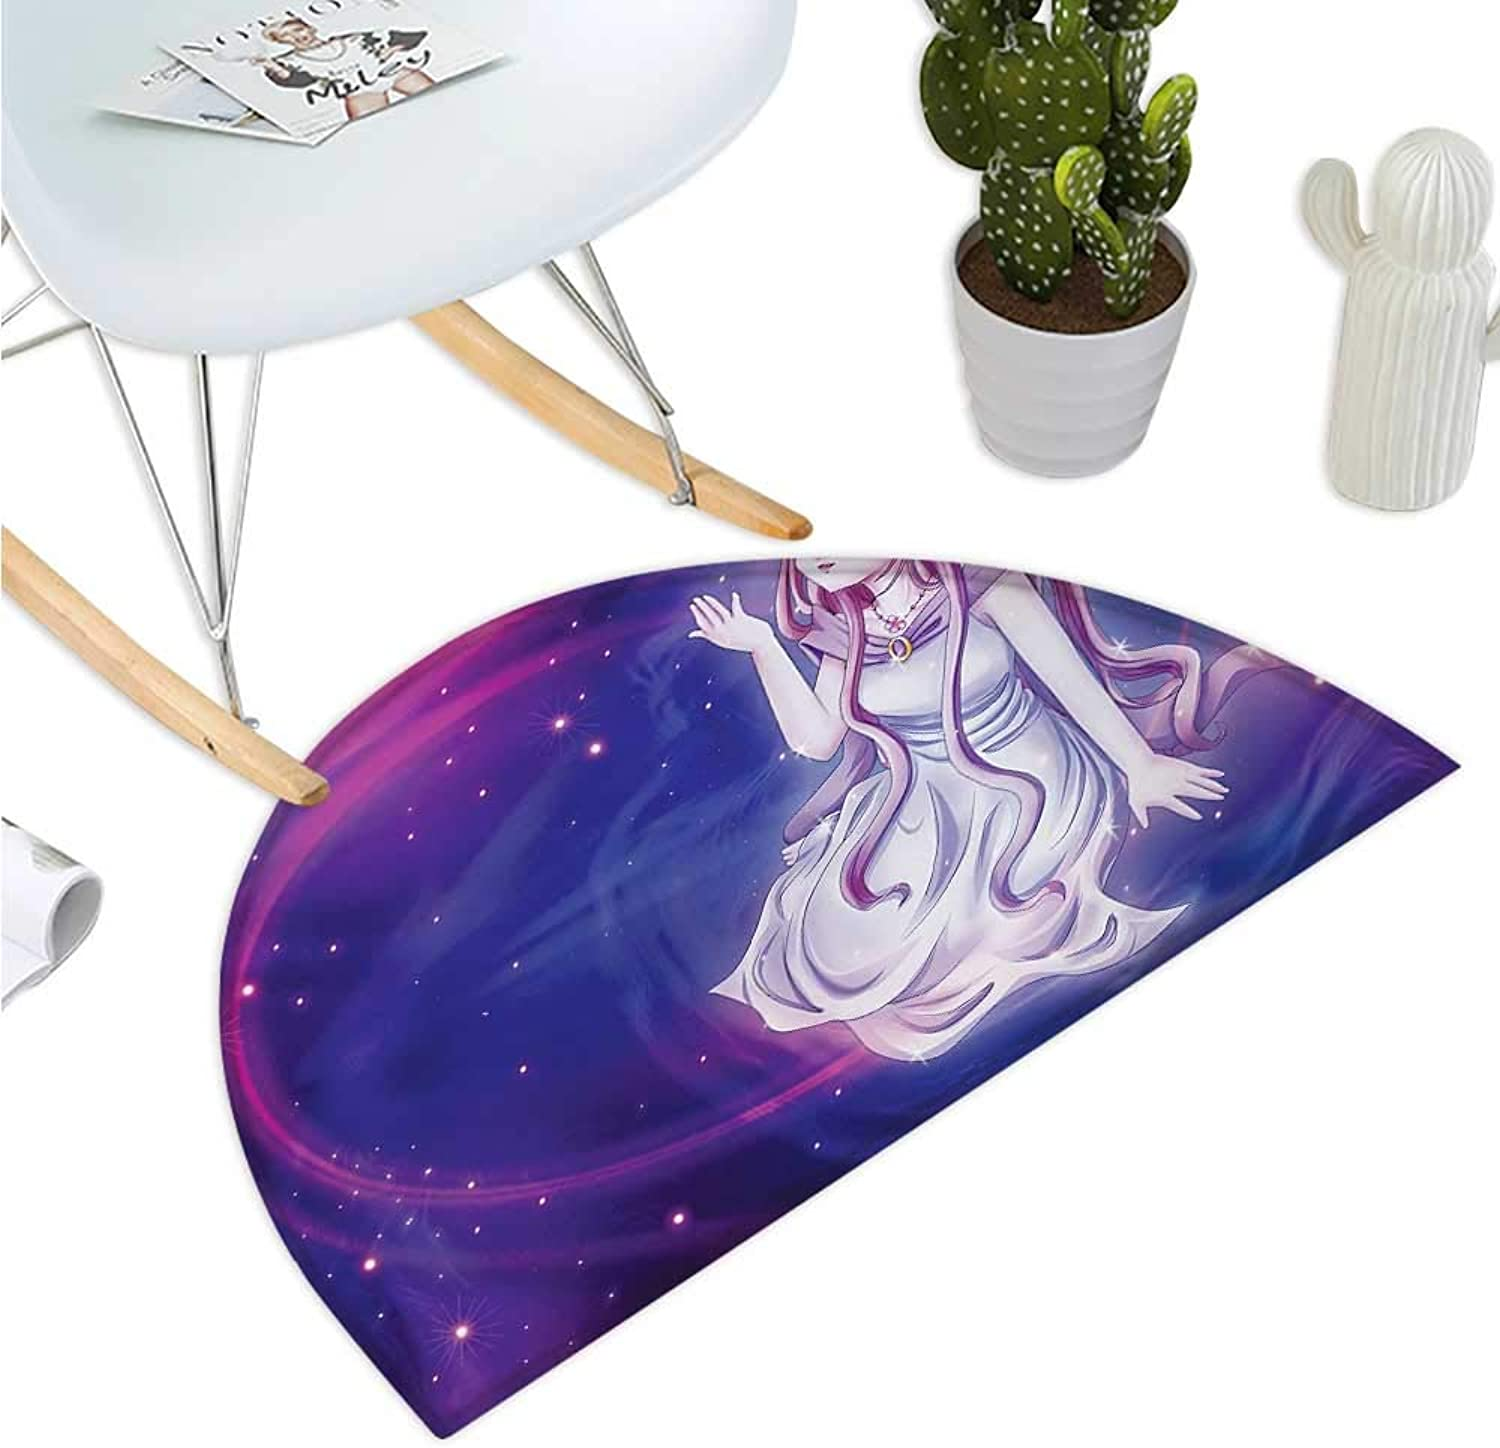 Anime Semicircular Cushion Cute Purple Anime Fairy Sitting in Theme of Zodiac Astrology Hgoldscope Sign Artprint Halfmoon doormats H 35.4  xD 53.1  Purple bluee